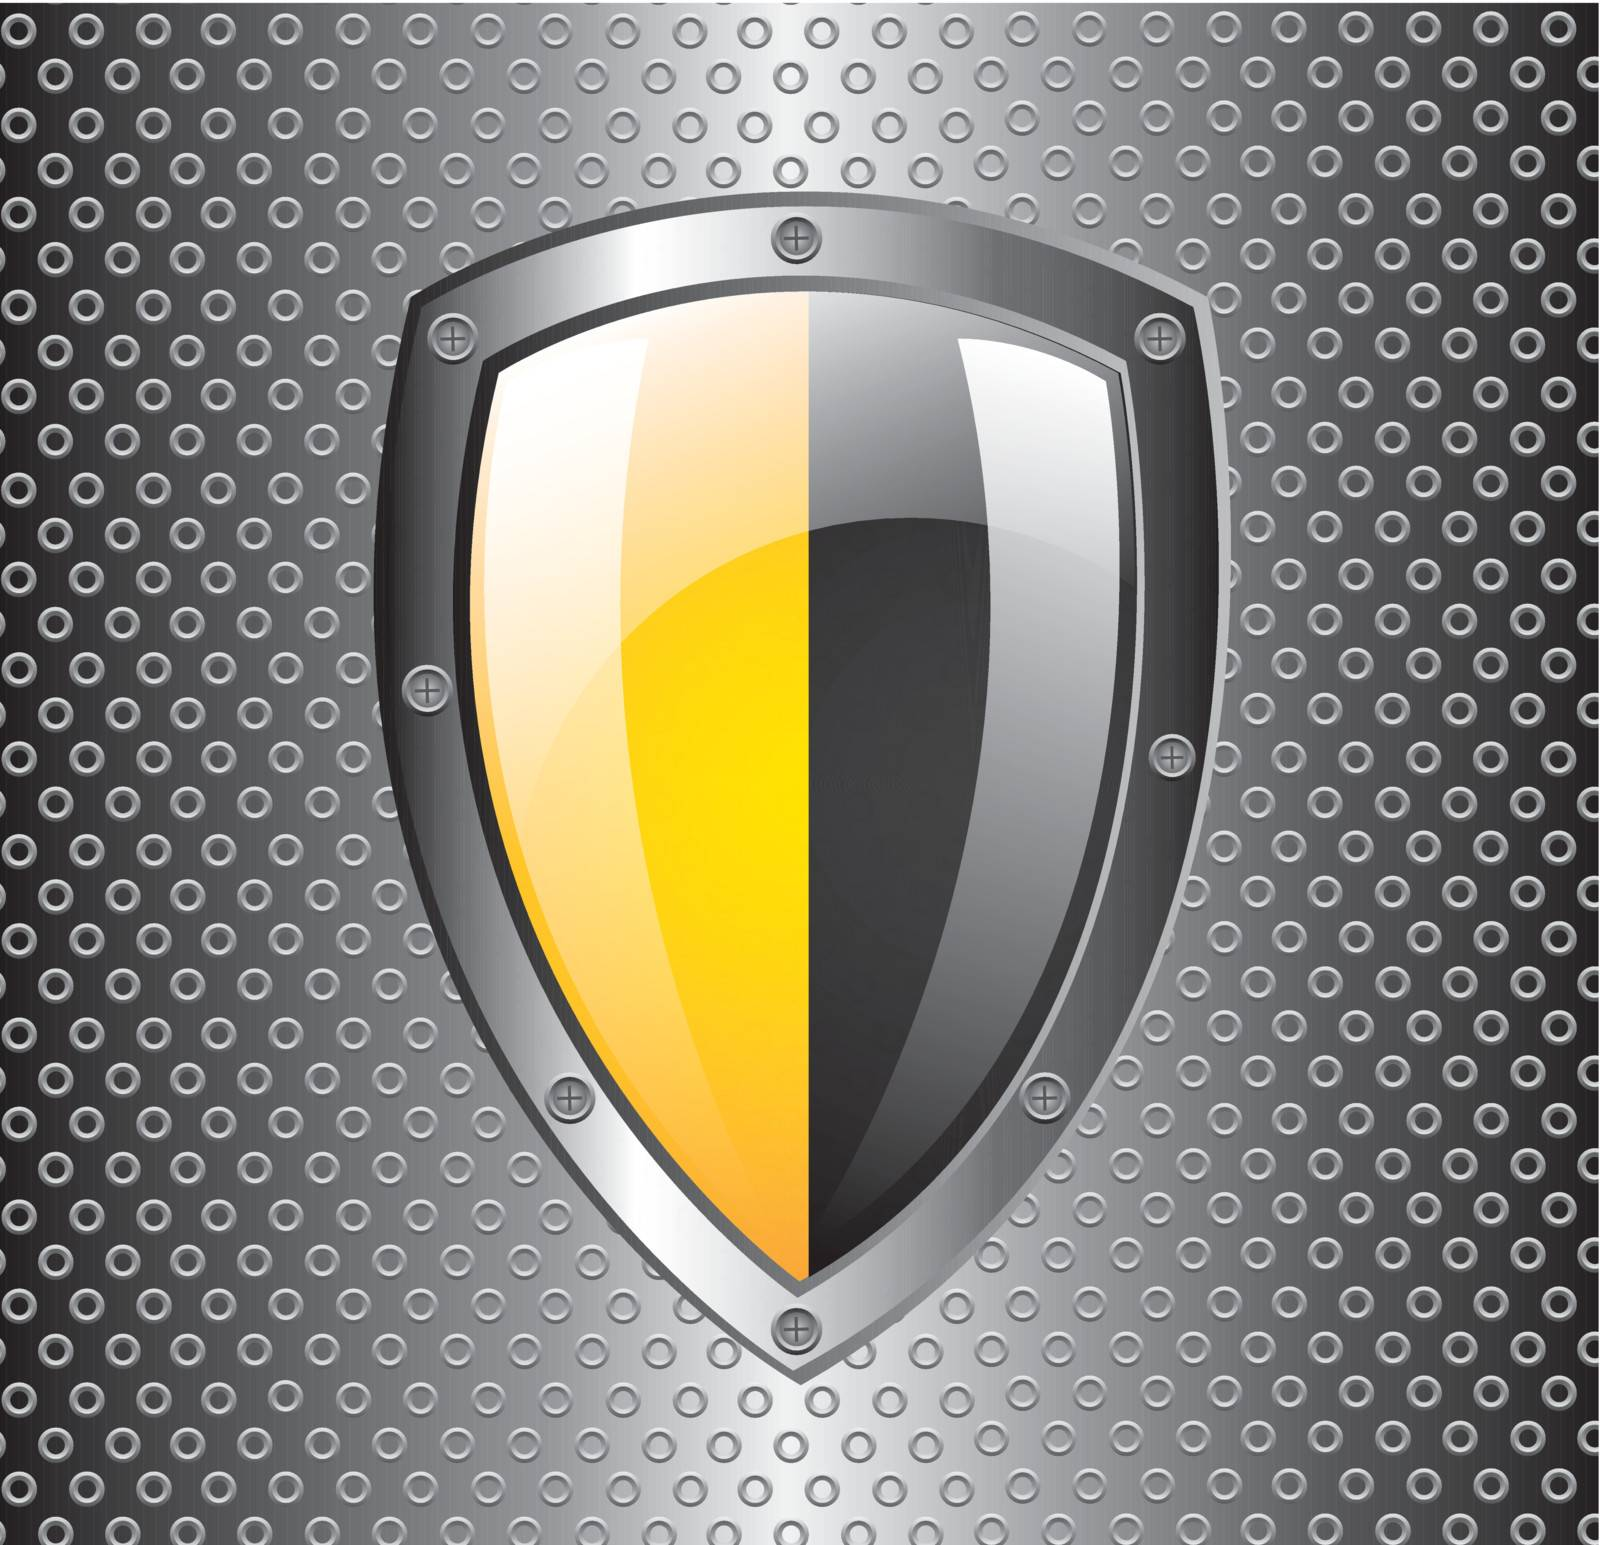 Guard icon over grill background vector illustration